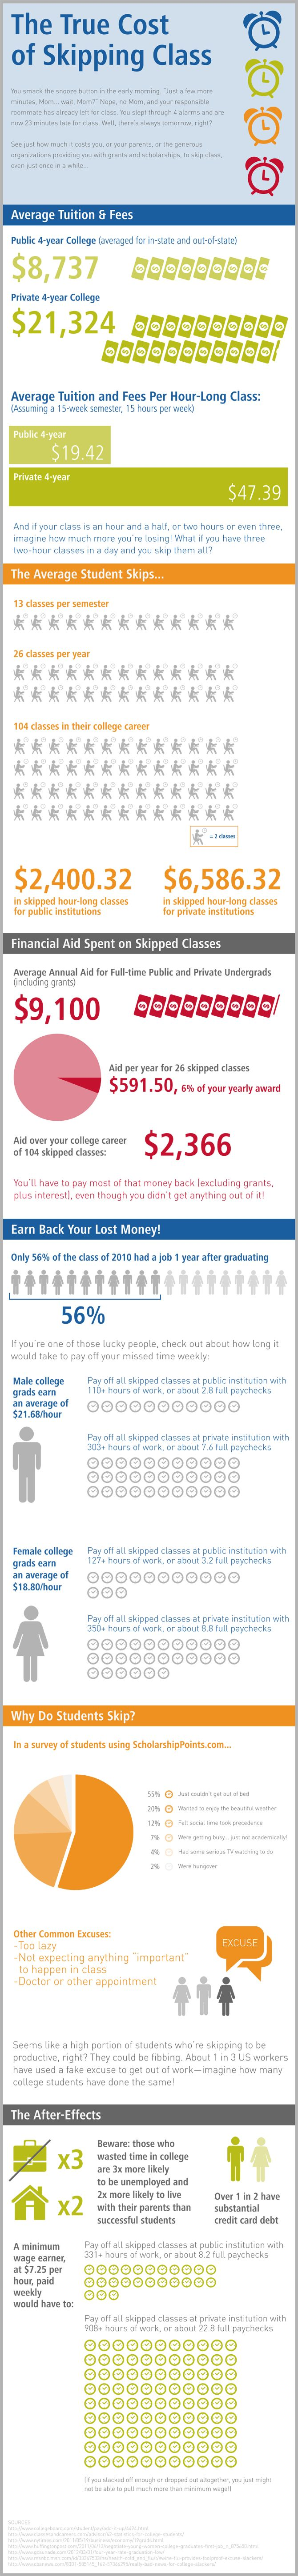 I'm SO going to share this with the teens w/ whom I work! the true cost of skipping class